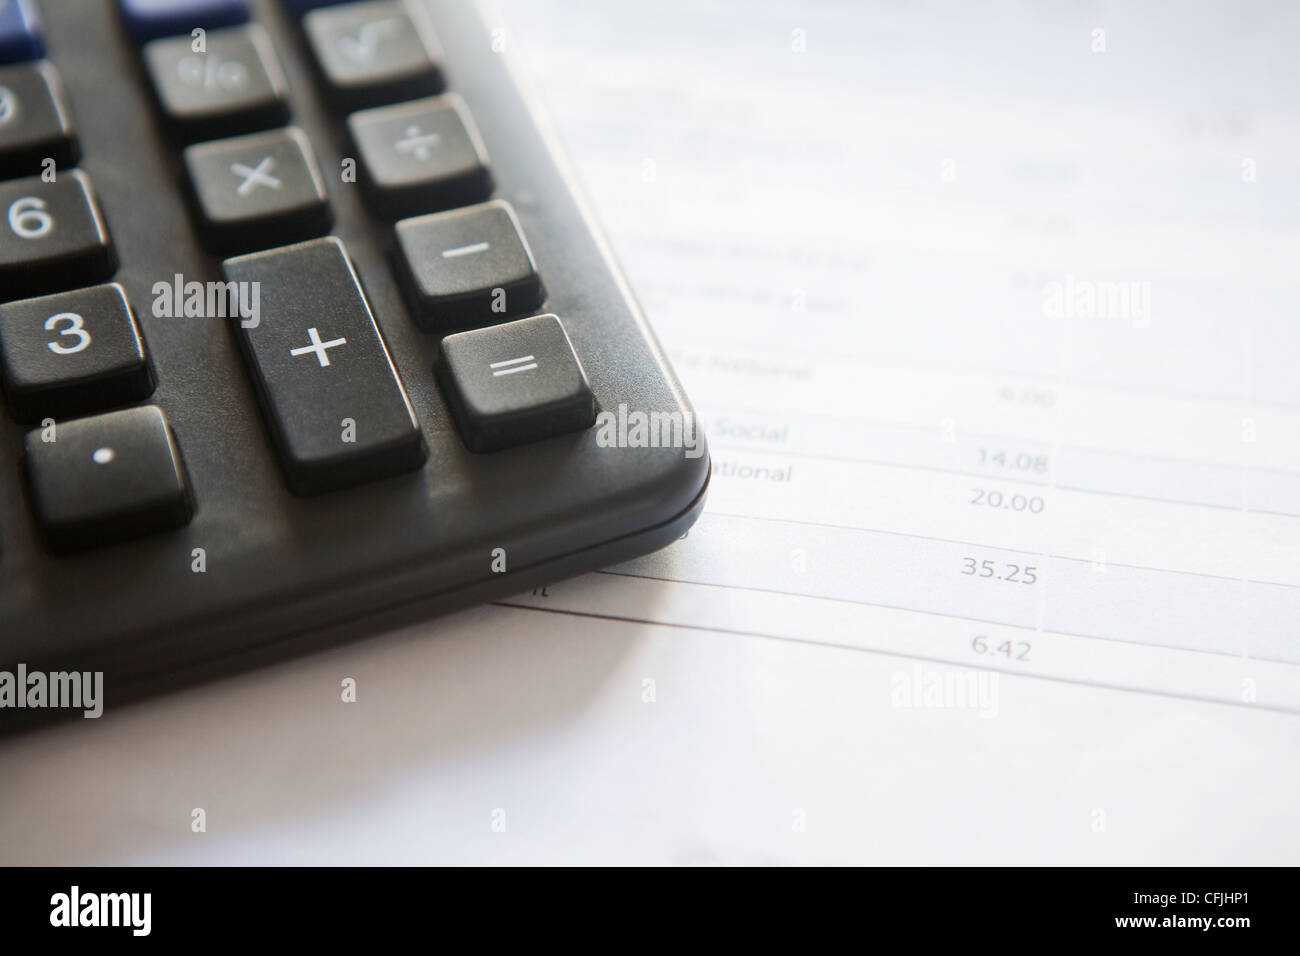 Calculatrice et loi Photo Stock